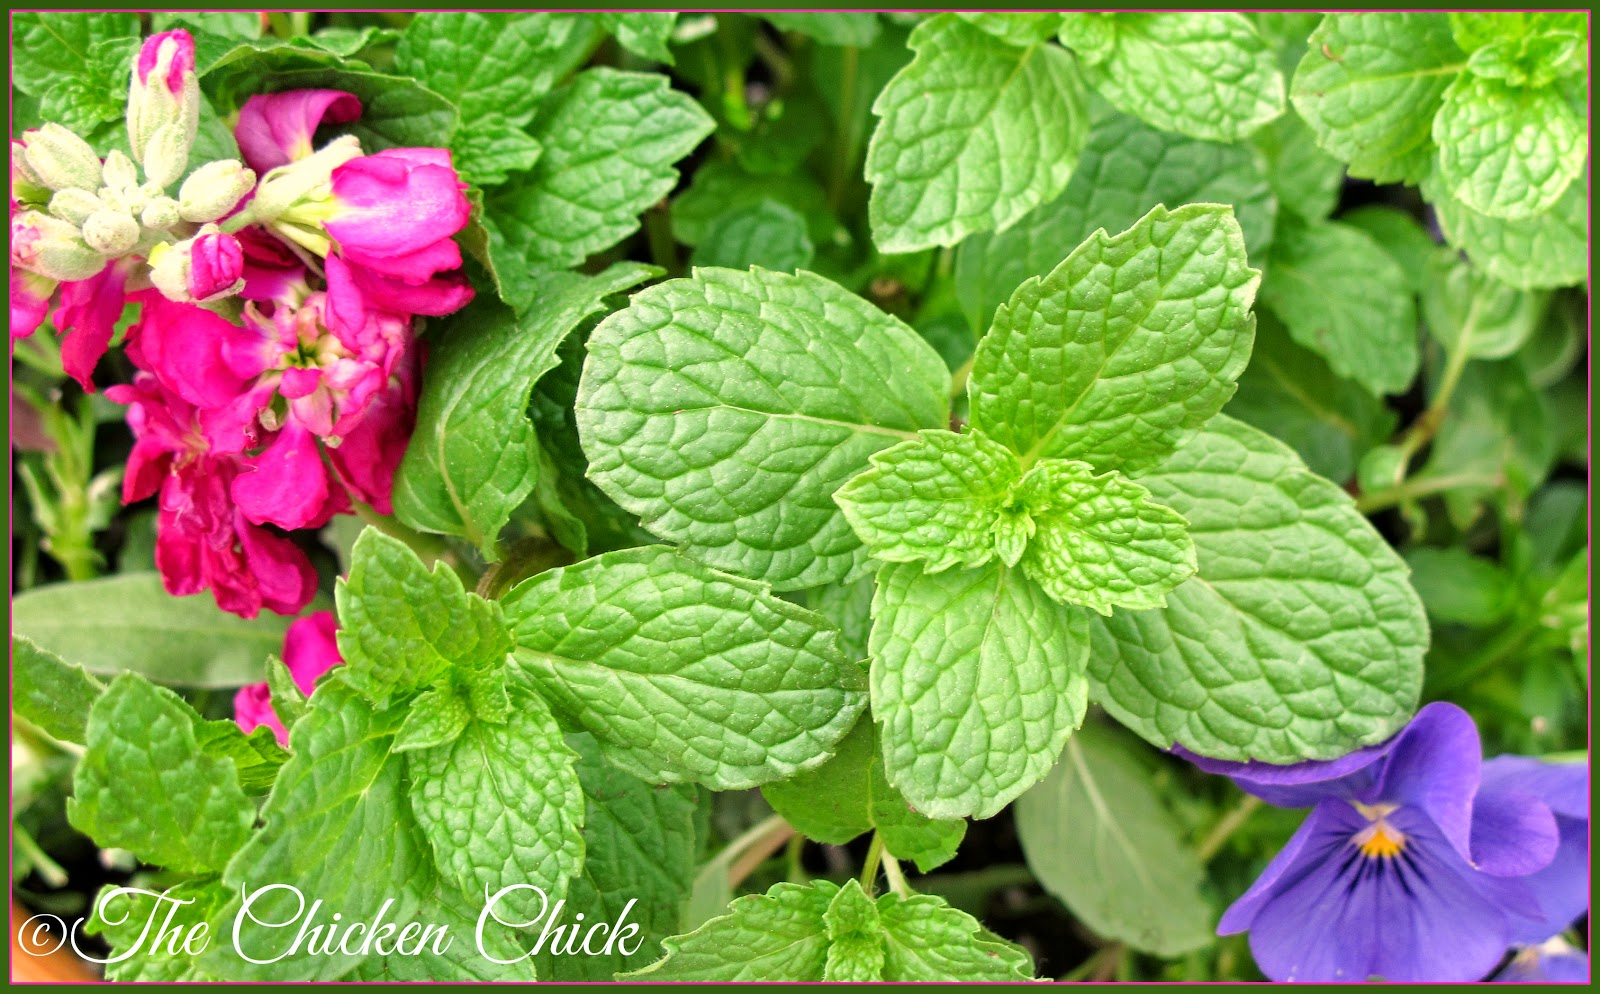 """A credible herbalist will not use the term """"antibiotic"""" in describing the actions of an herb. Herbs are not antibiotics. Antibiotics act by killing the invading bacteria without regard for anything else it may disrupt or damage.  Herbs should be used to nourish, support and stimulate the bodily functions to act normally, thereby fighting off pathogens naturally of their own accord.  The misuse of herbs can cause them act indiscriminantly and destructively, much like antibiotics."""